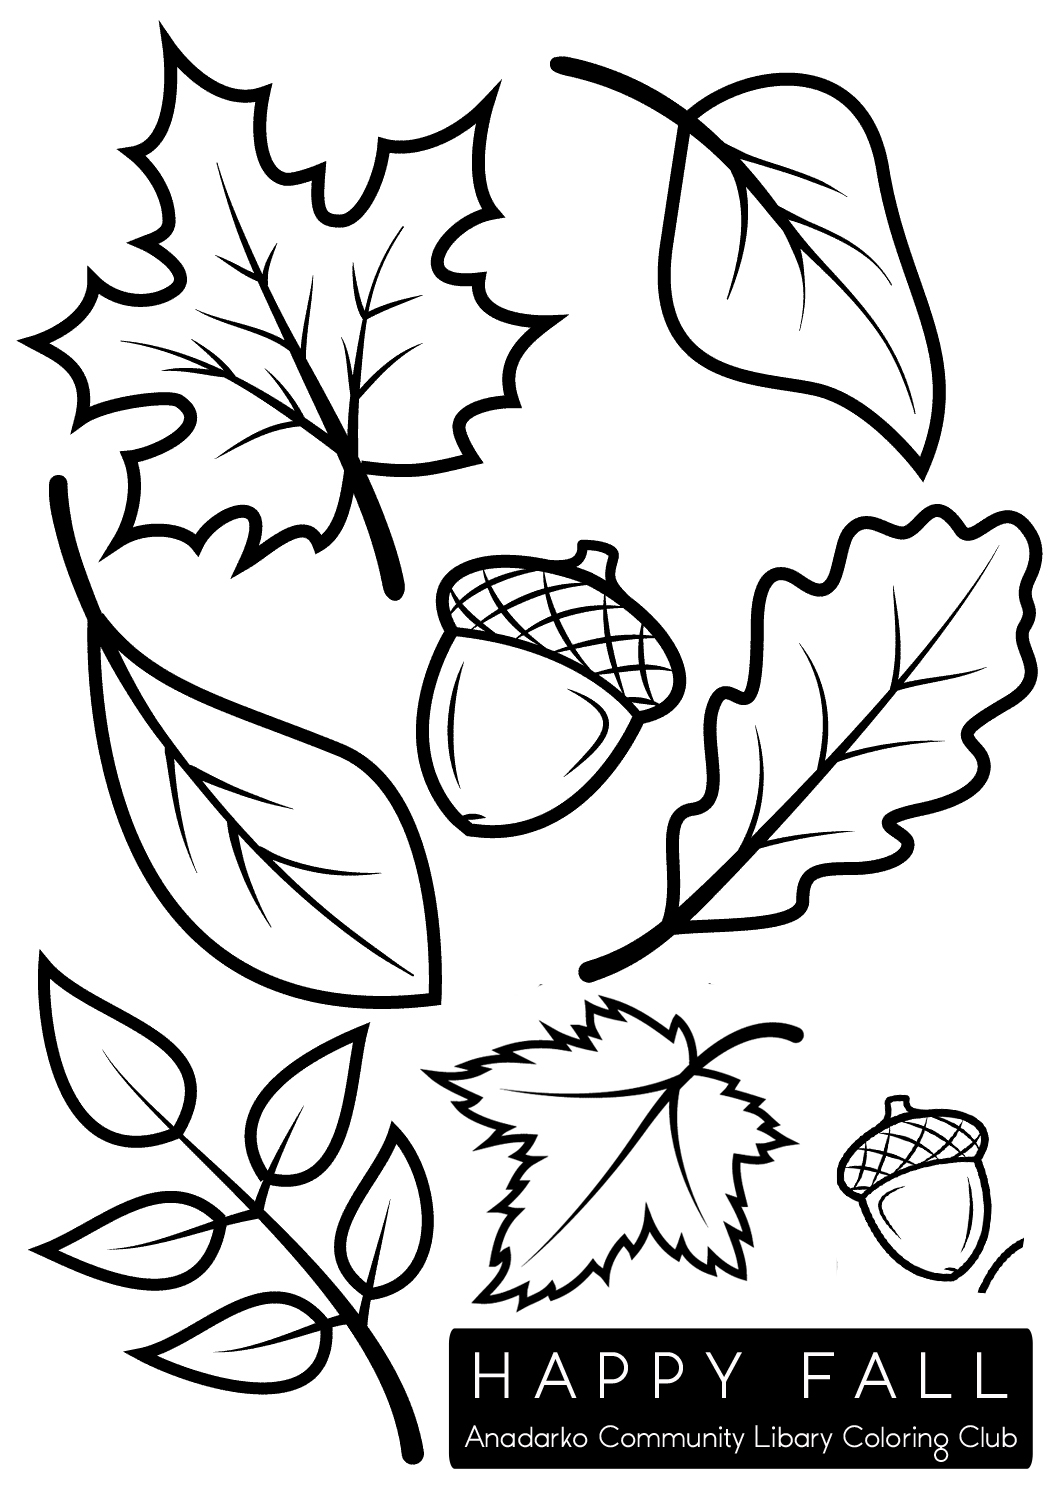 fall coloring sheets free 19 places to find free autumn and fall coloring pages fall sheets coloring free